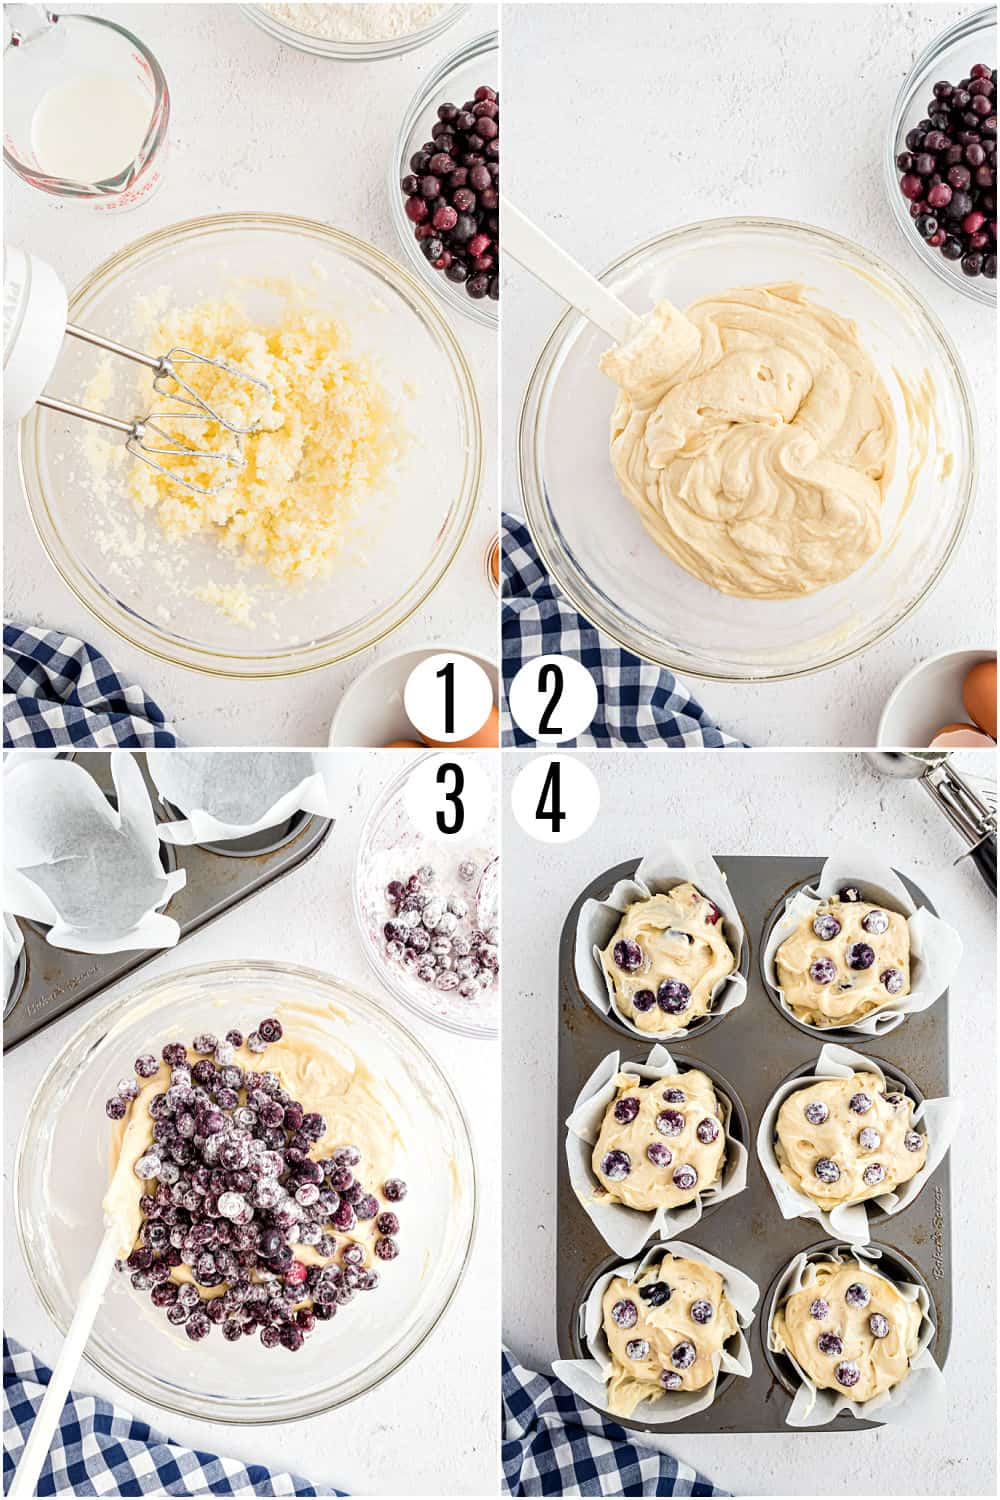 Step by step photos showing how to make blueberry muffins.